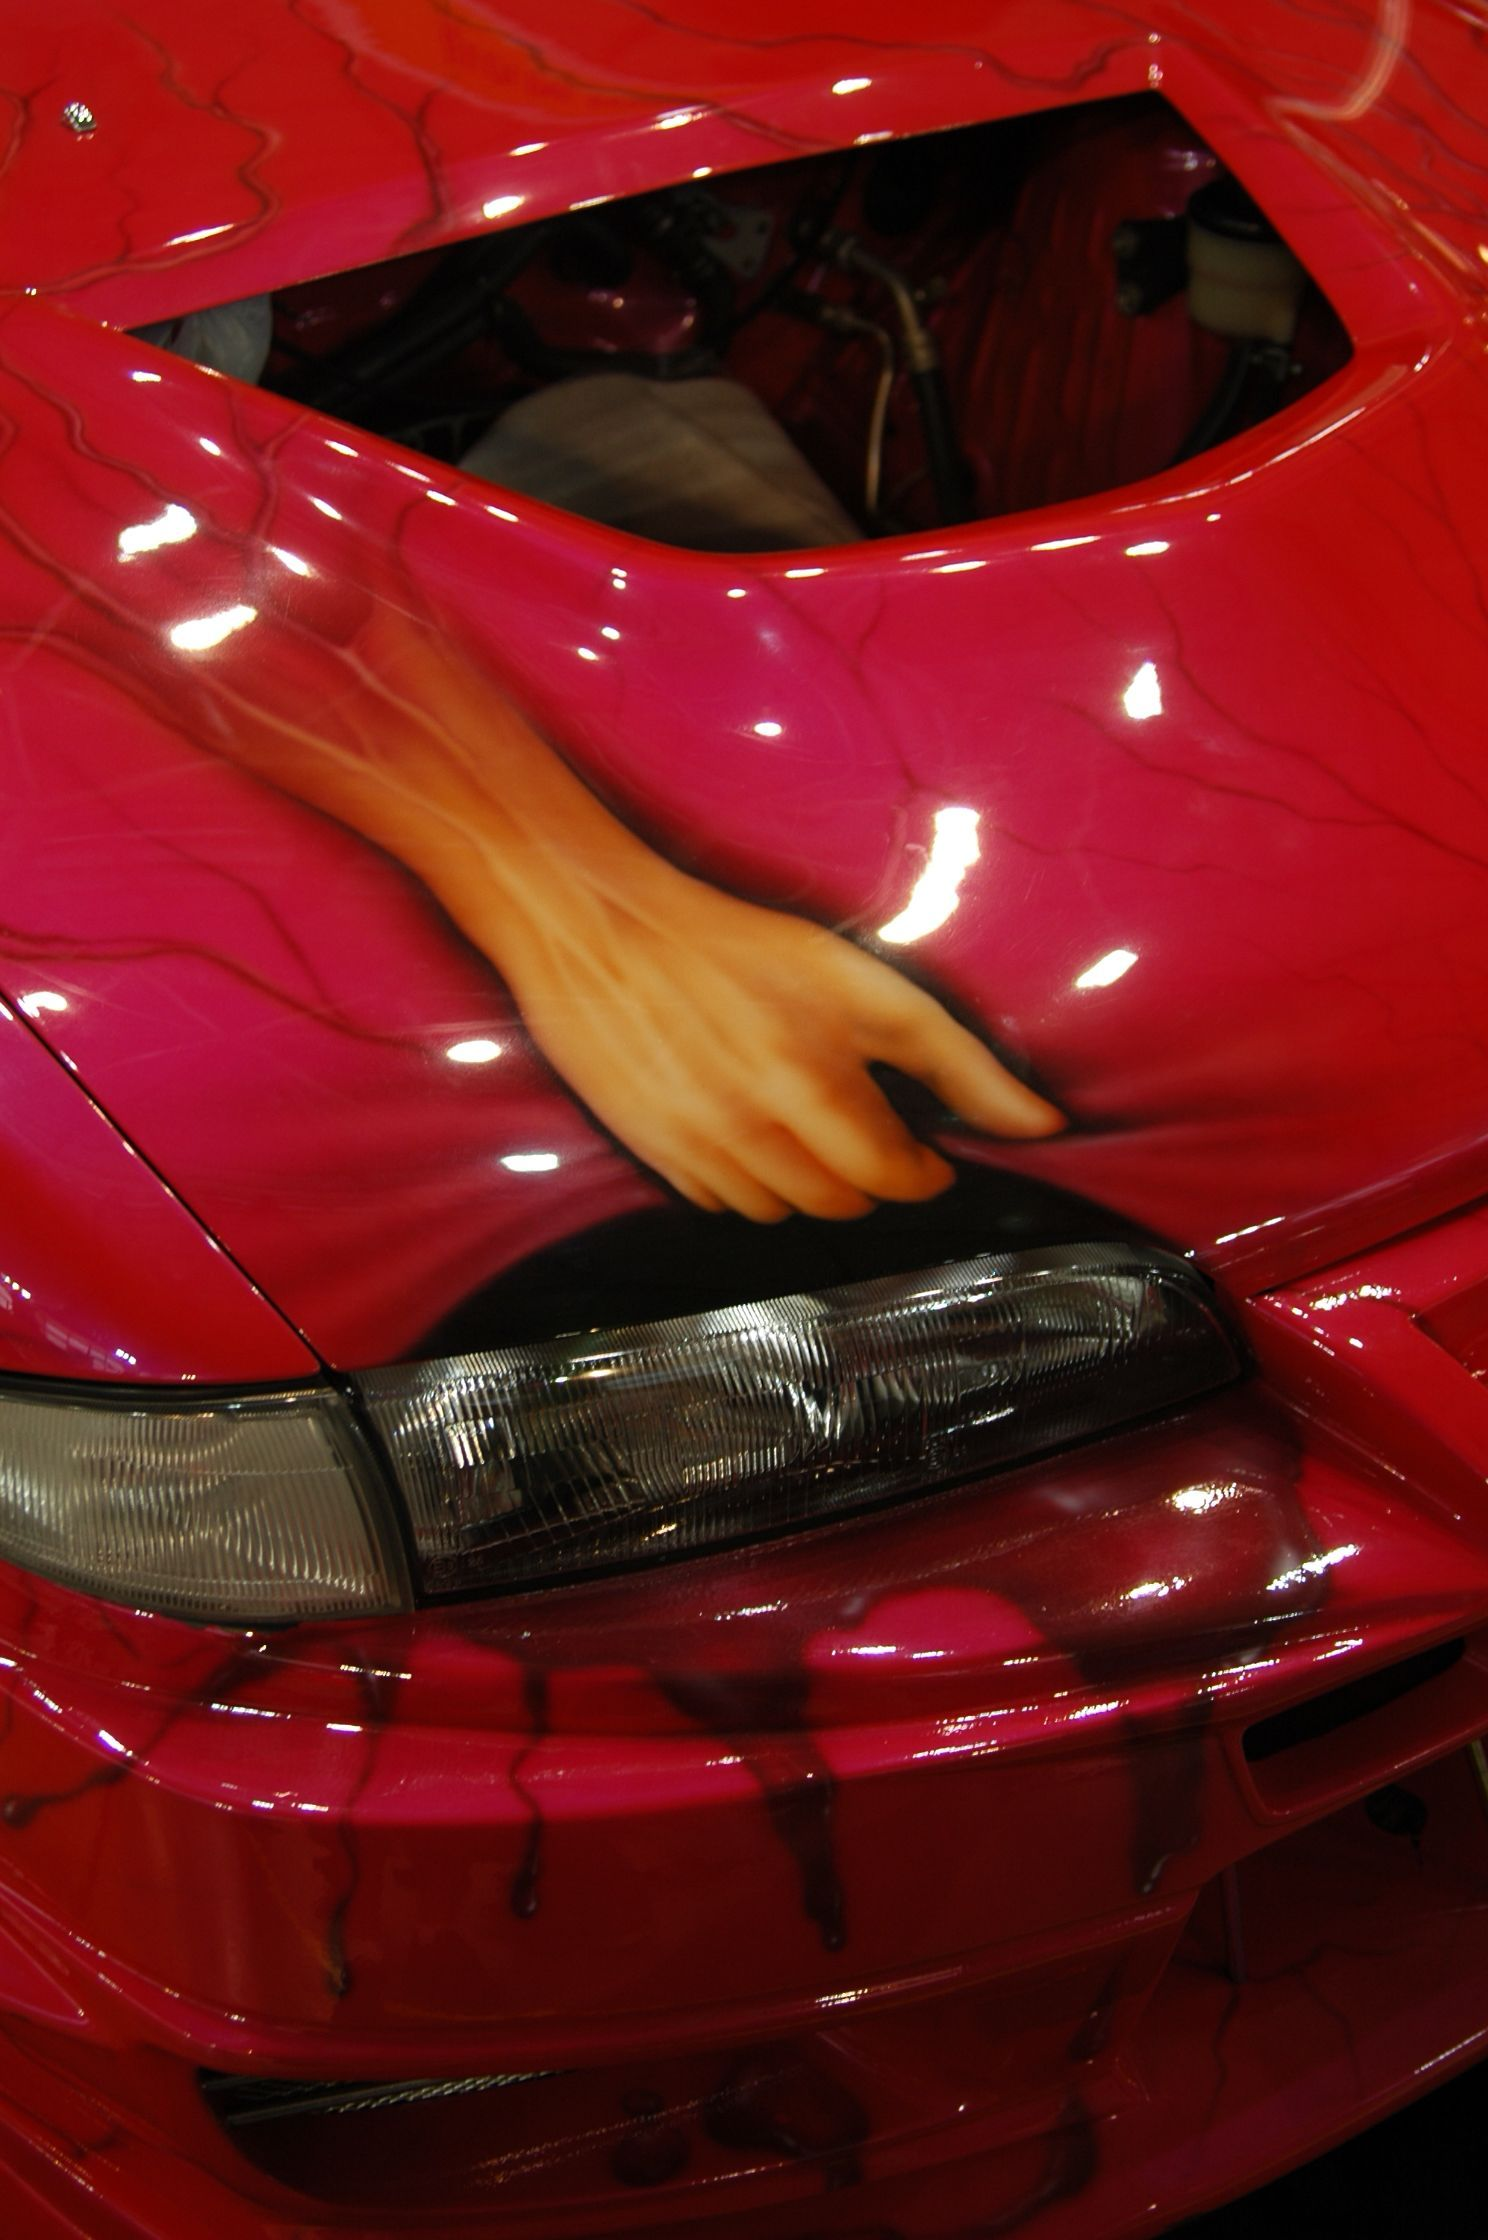 Airbrush on hood of a car...Show me your headlights